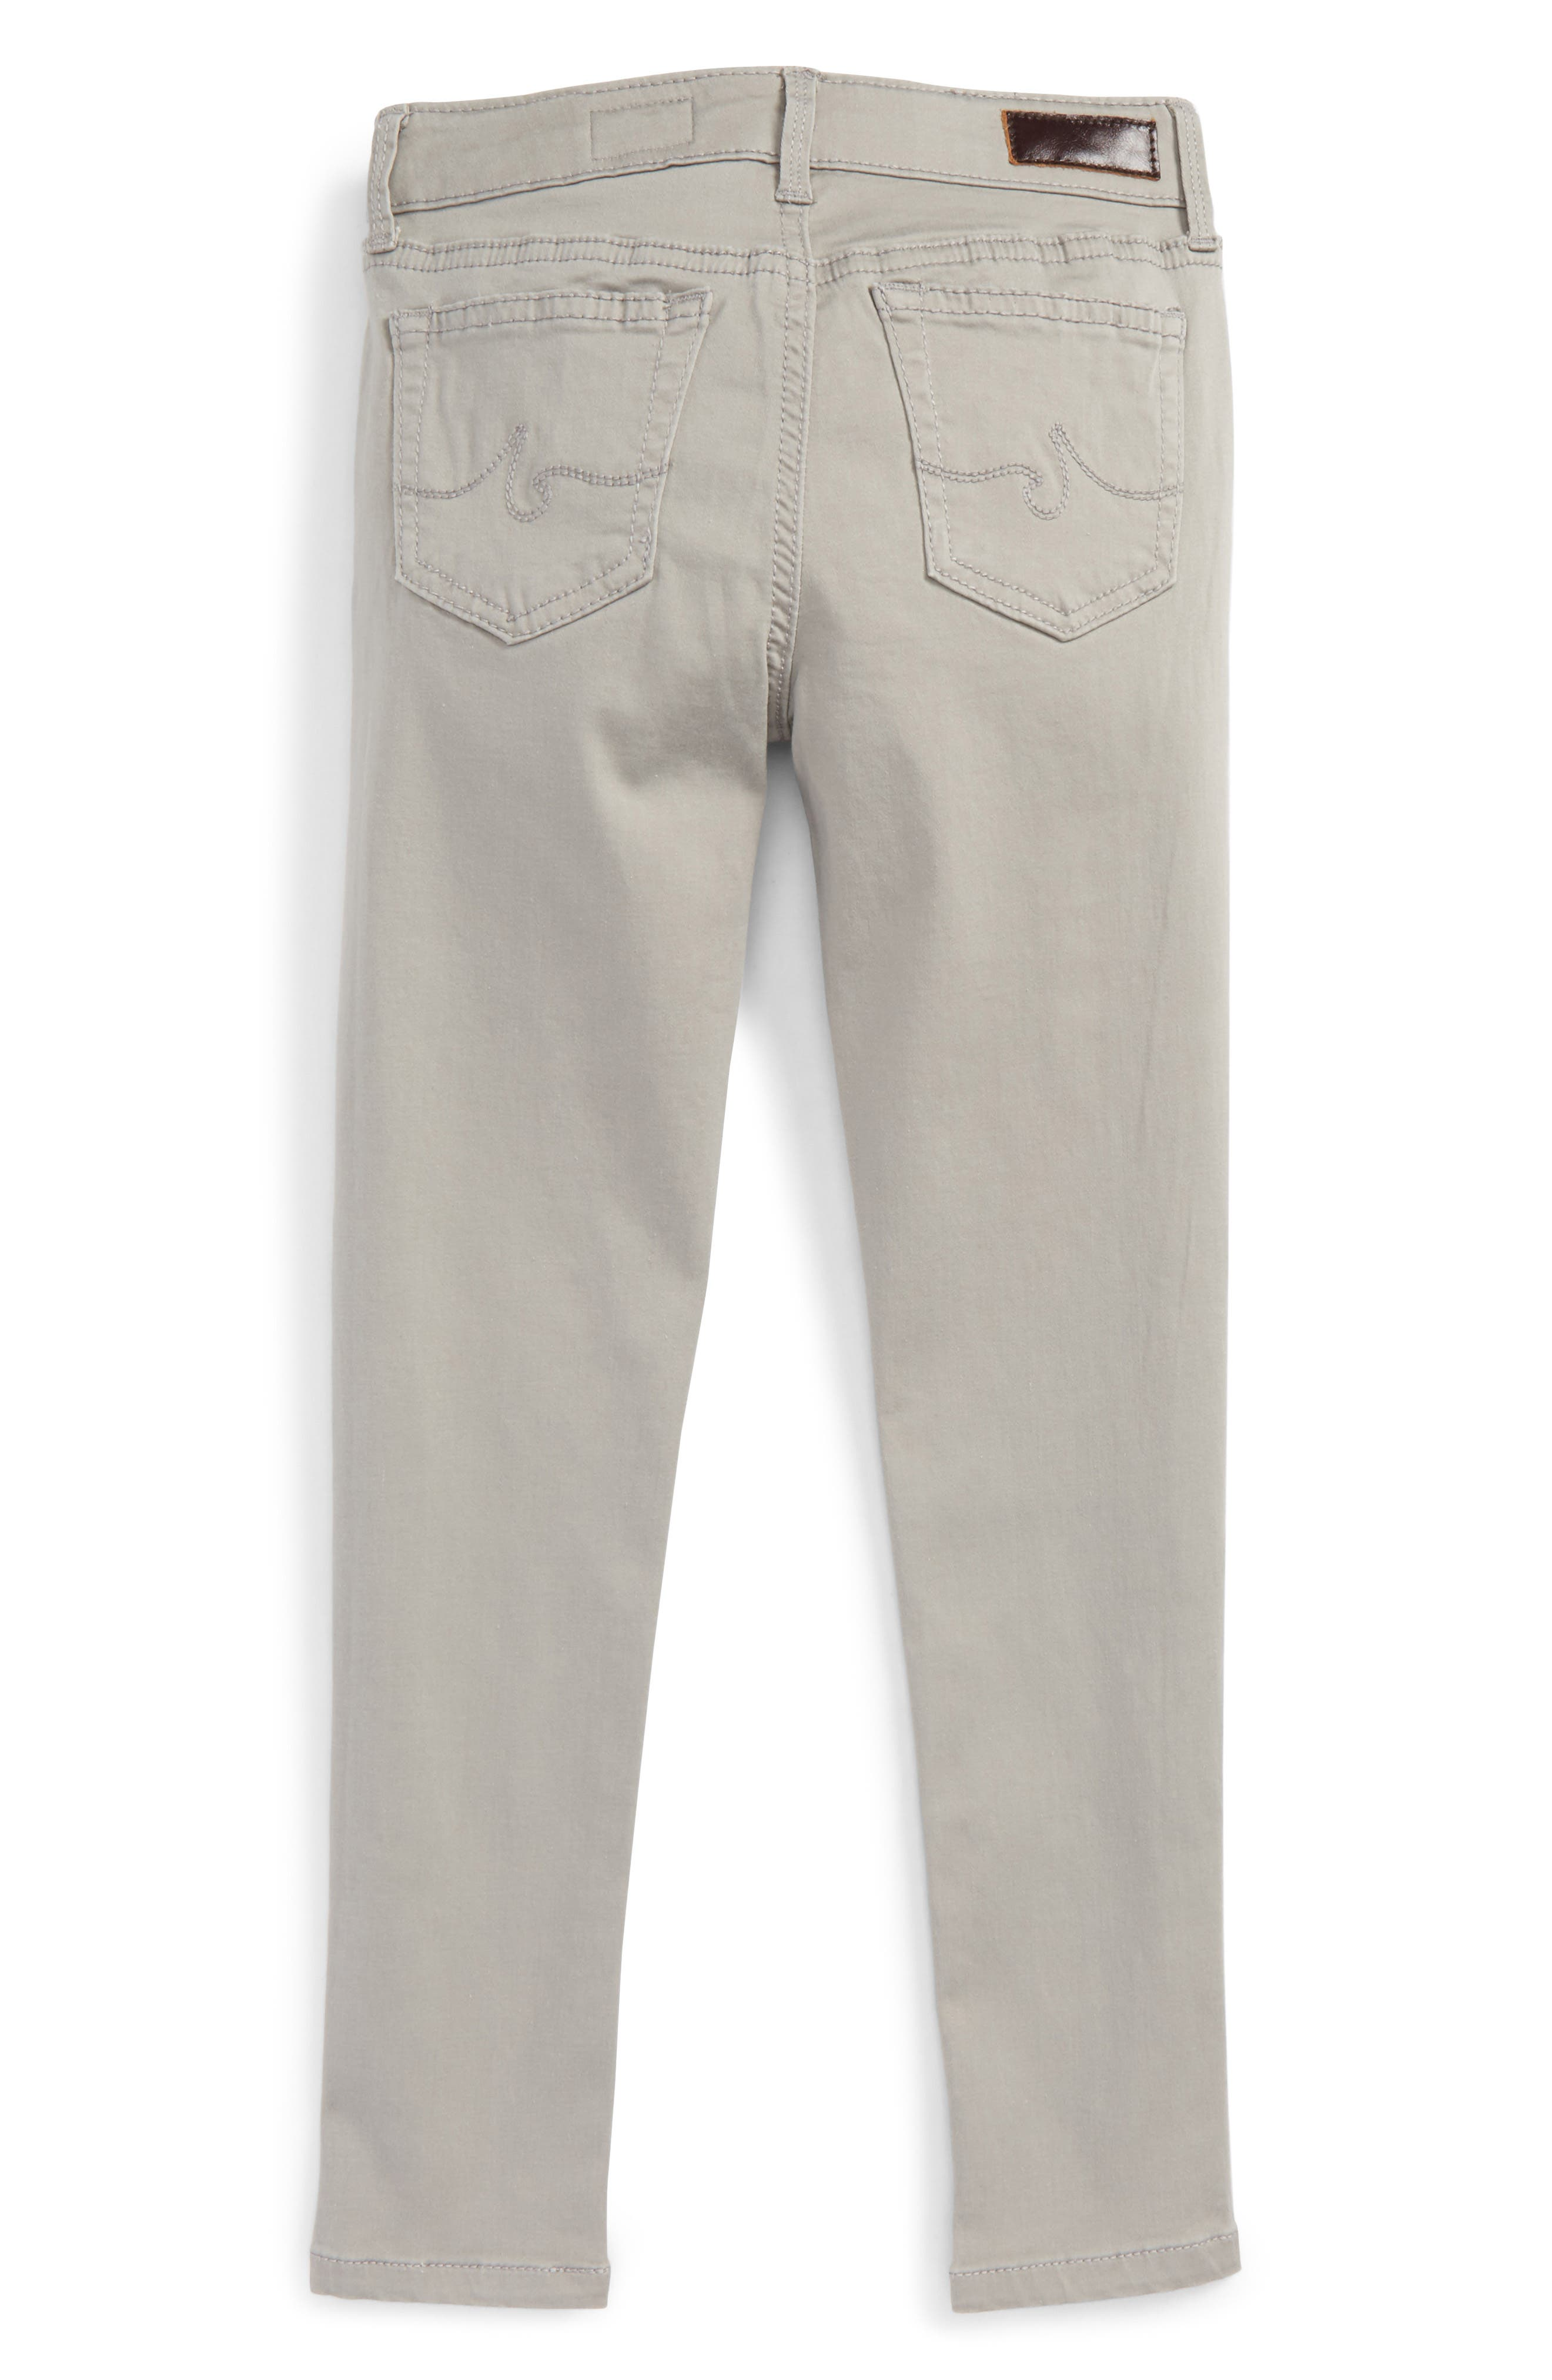 Twiggy Luxe Ankle Skinny Jeans,                             Alternate thumbnail 2, color,                             063